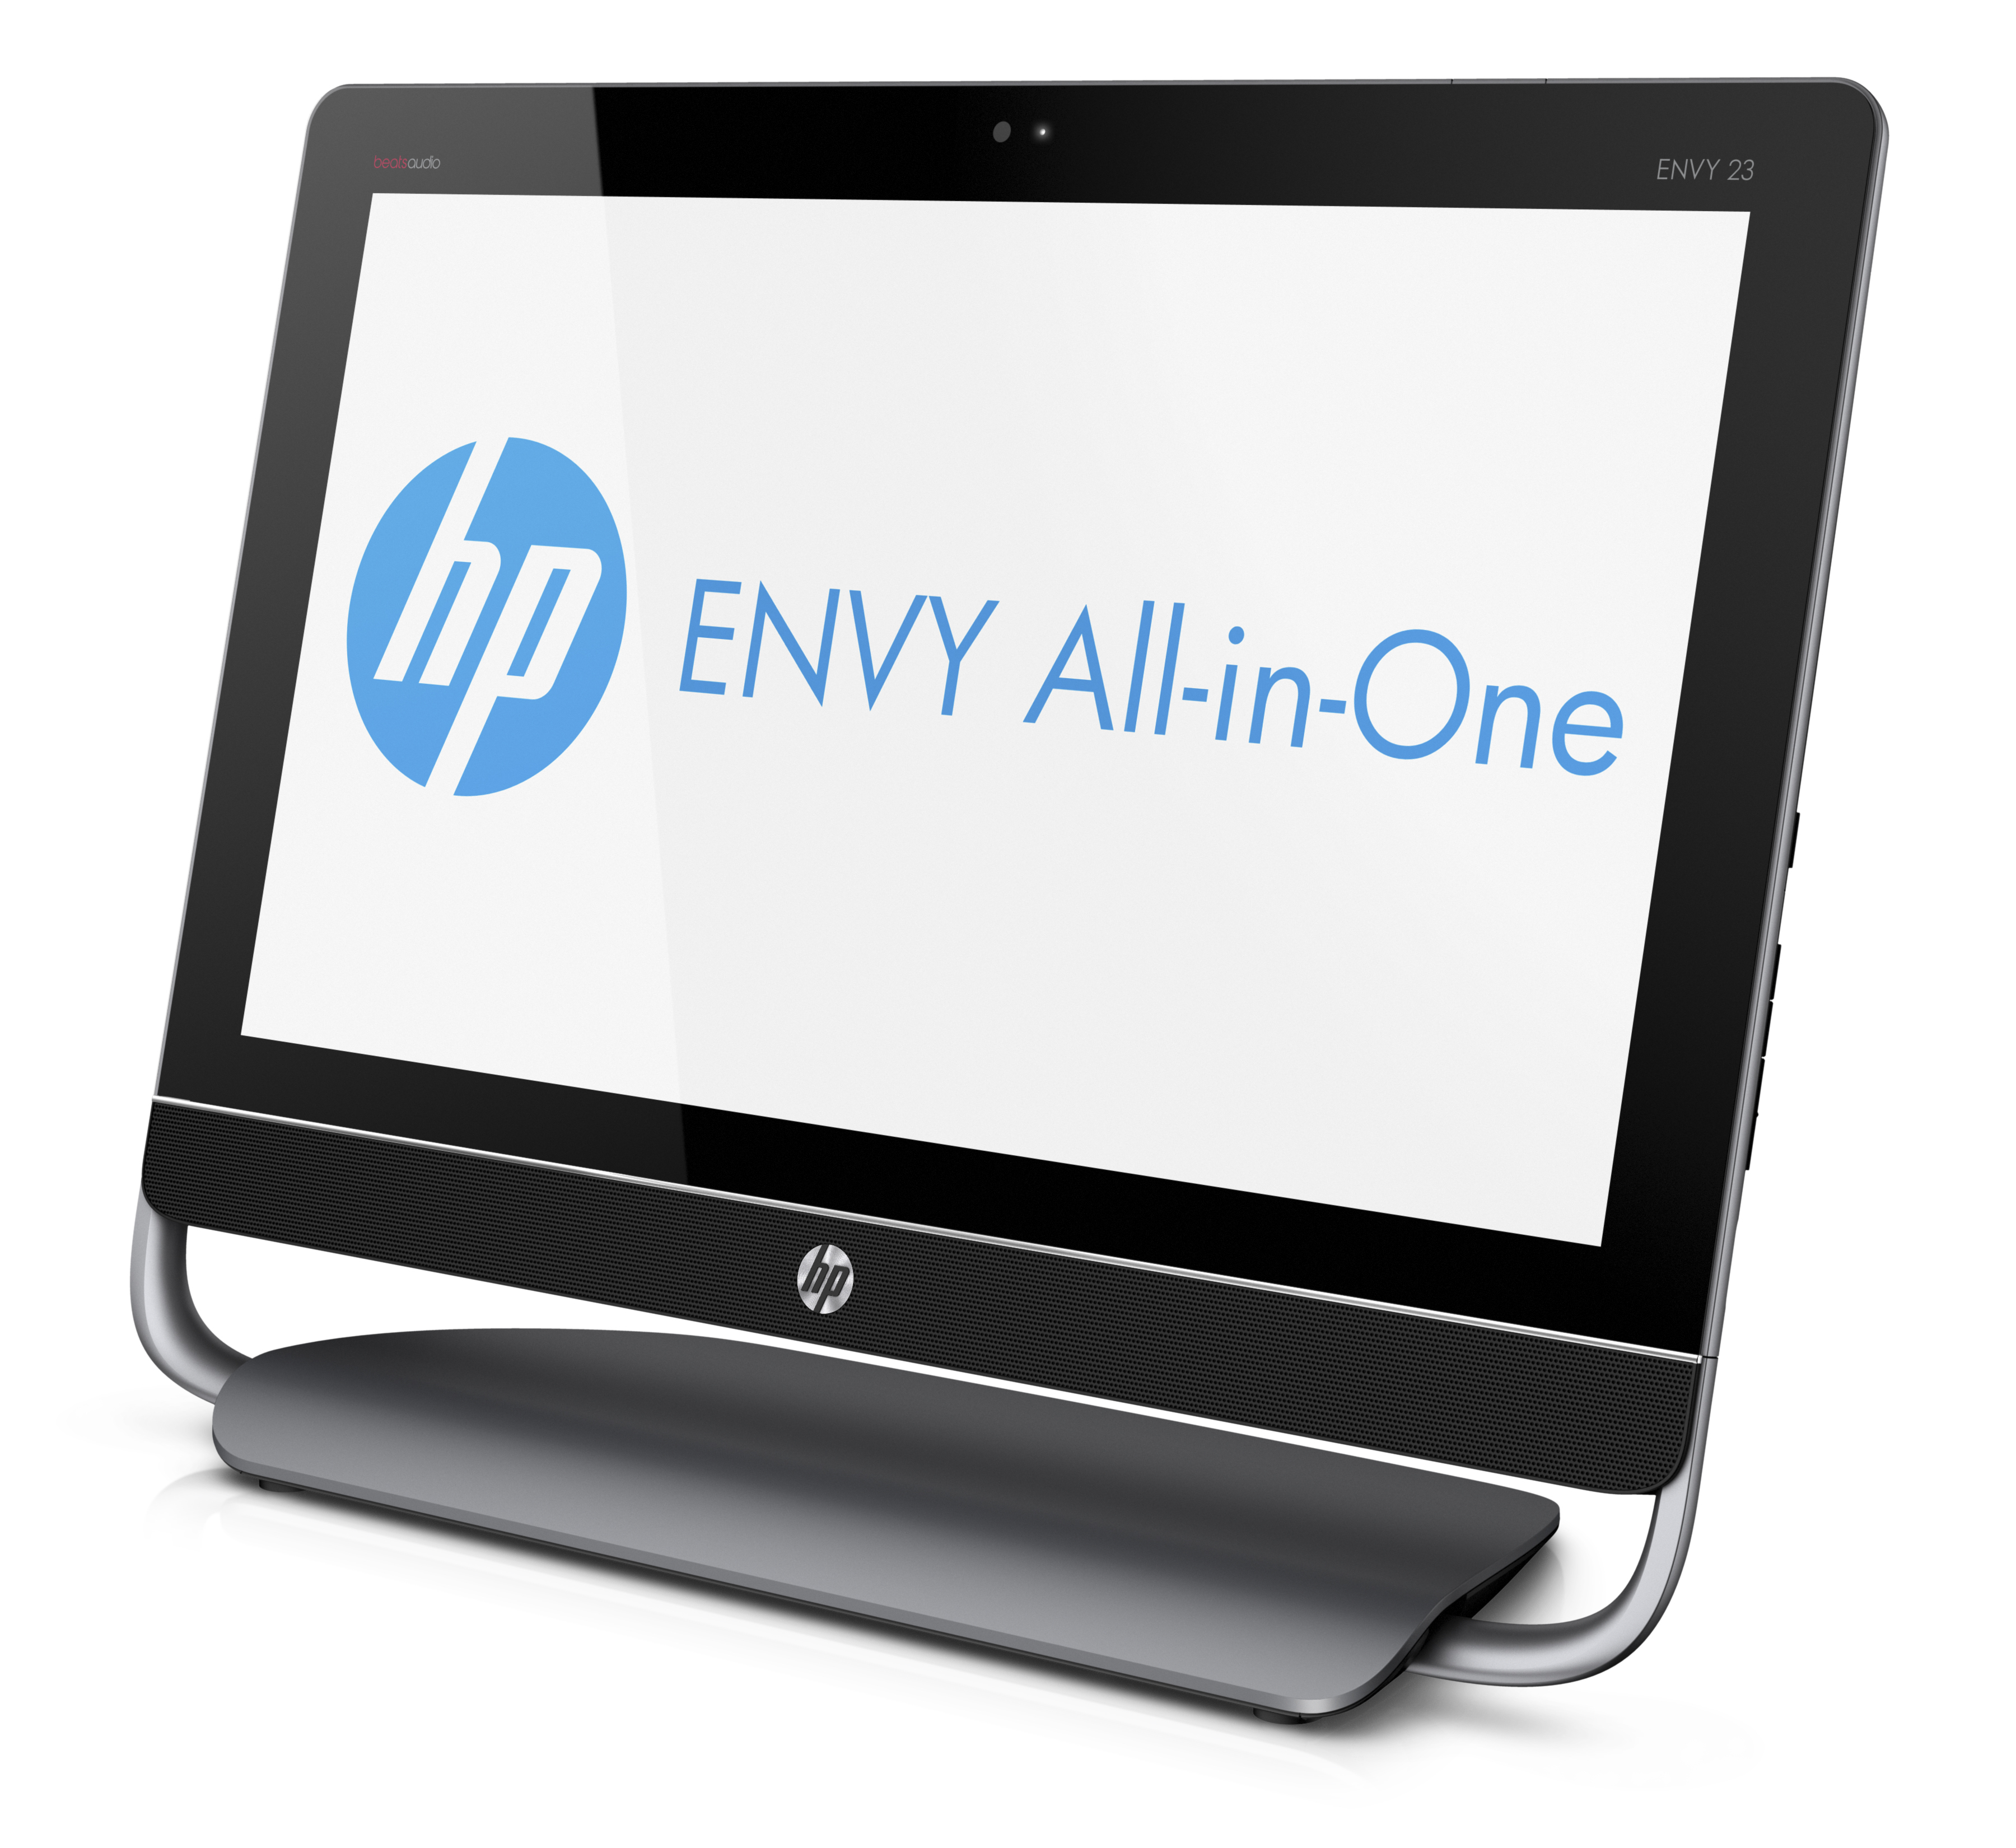 HP's new Envy 23 all-in-one will have a hard time standing out.